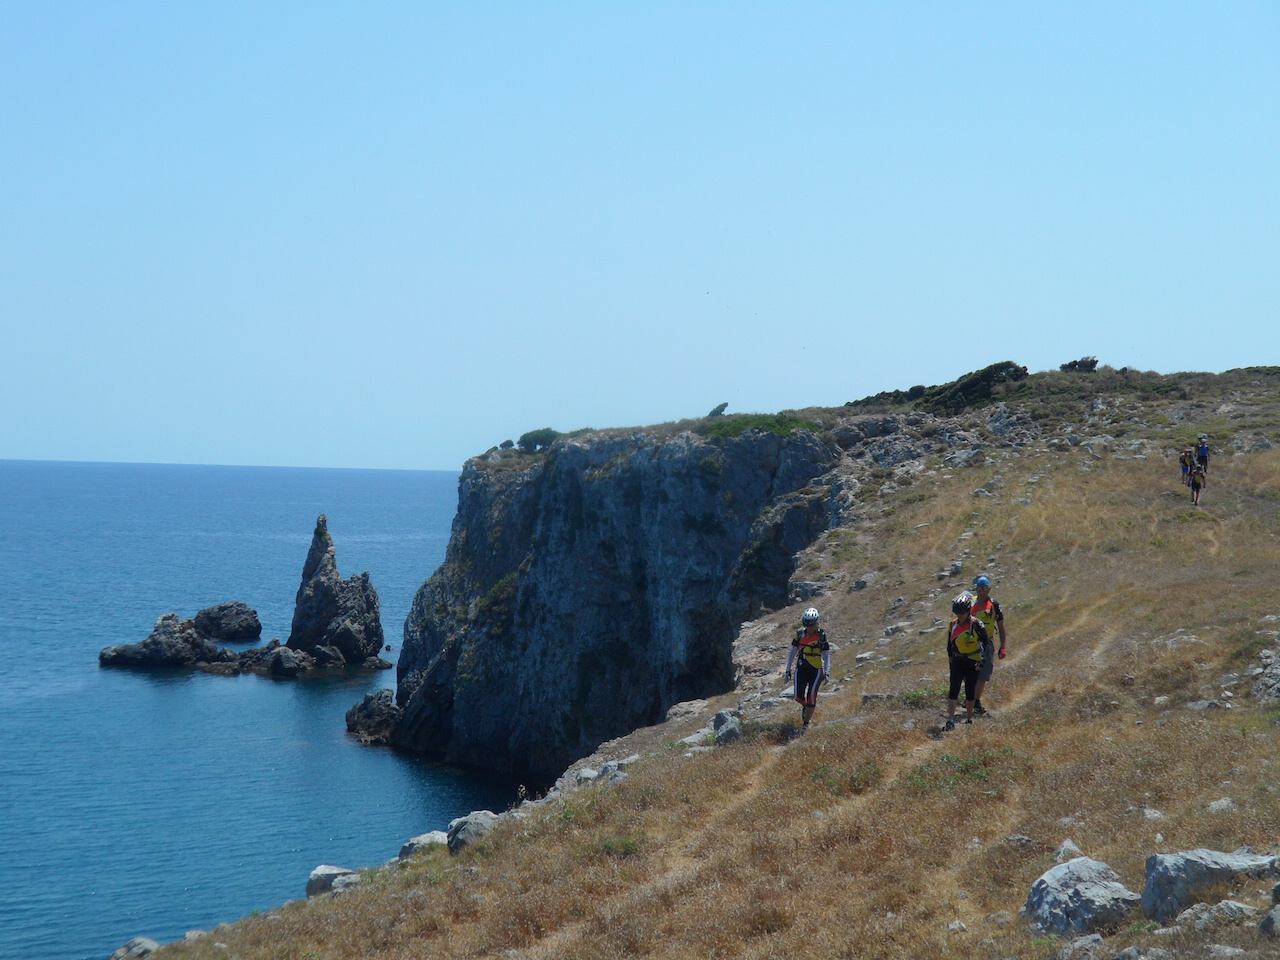 Hiking / Cliff Walking along Ancient Kirinthos (Family Walk)